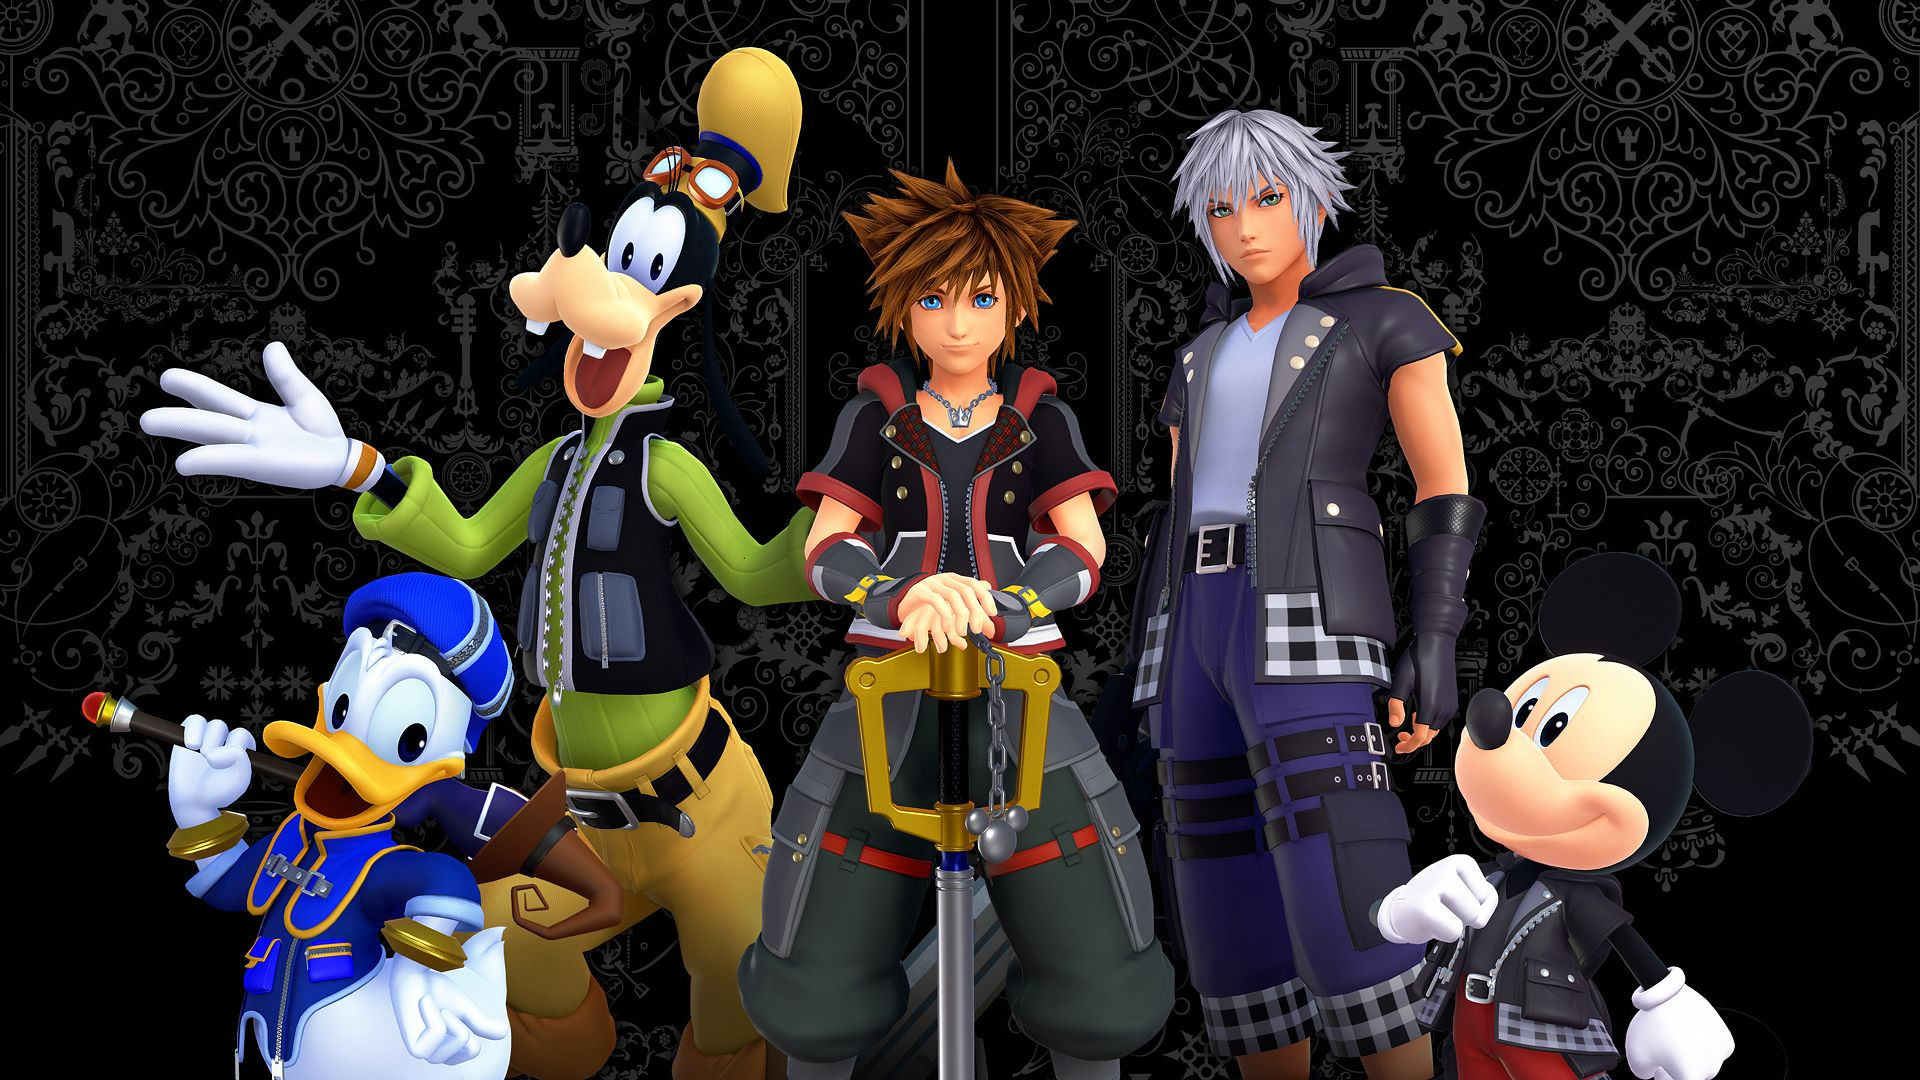 Kingdom Hearts III couldn't lead a strong fiscal year for Square Enix screenshot